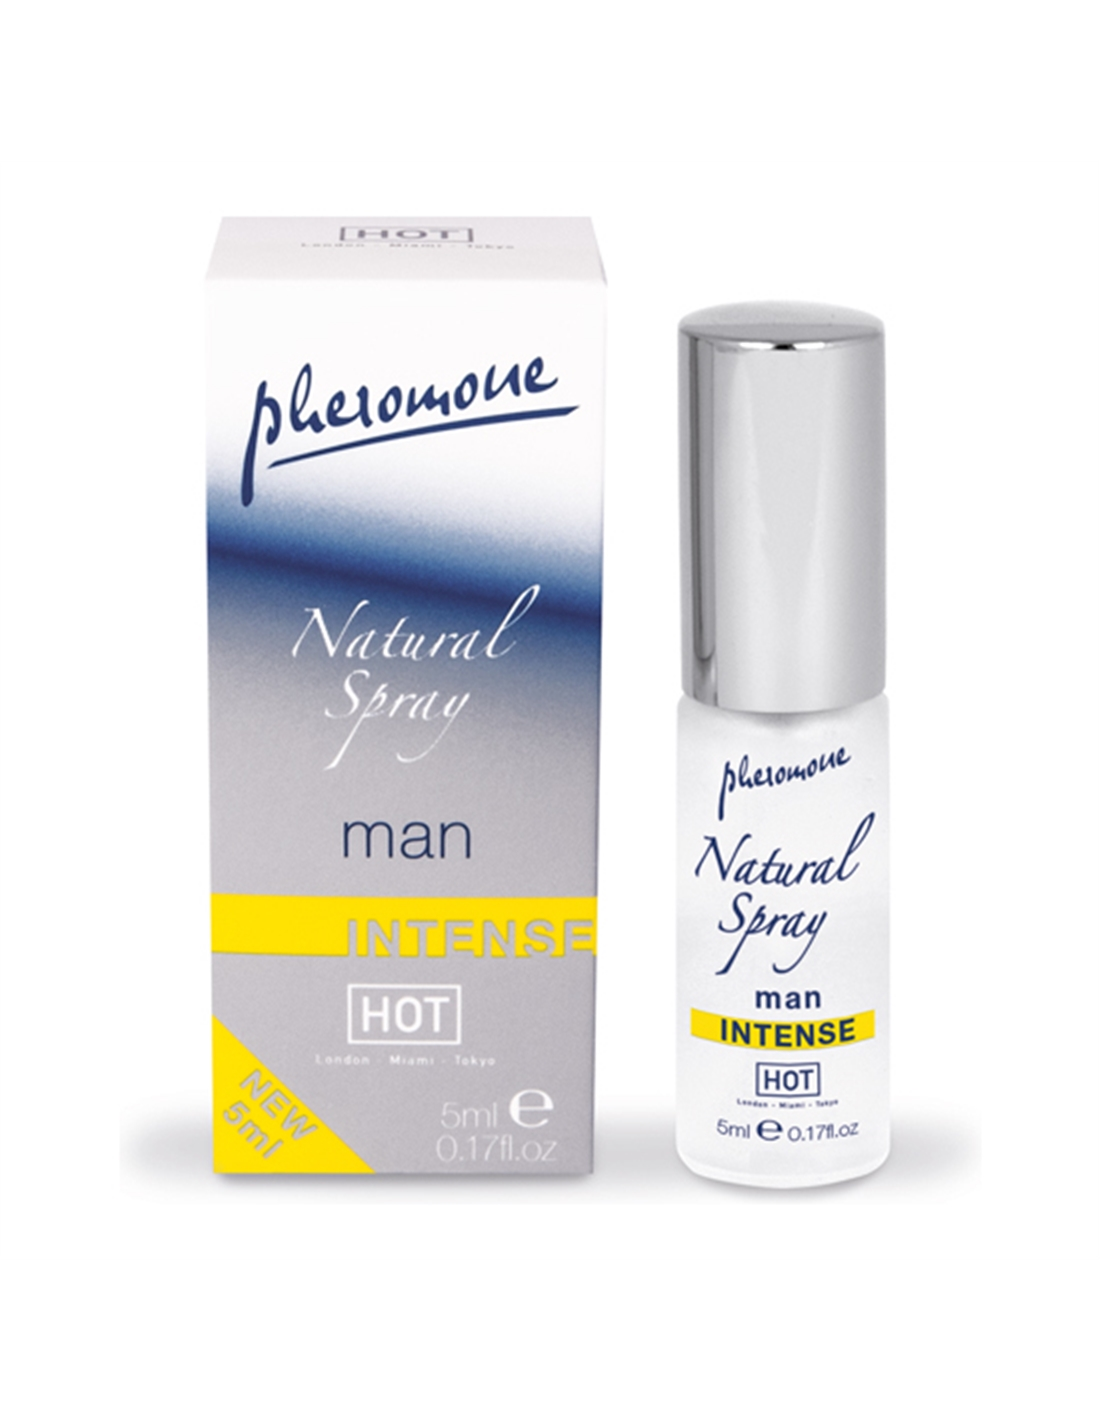 Perfume Com Feromonas Natural Spray Shiatsu Man Intens - 5ml - PR2010324232